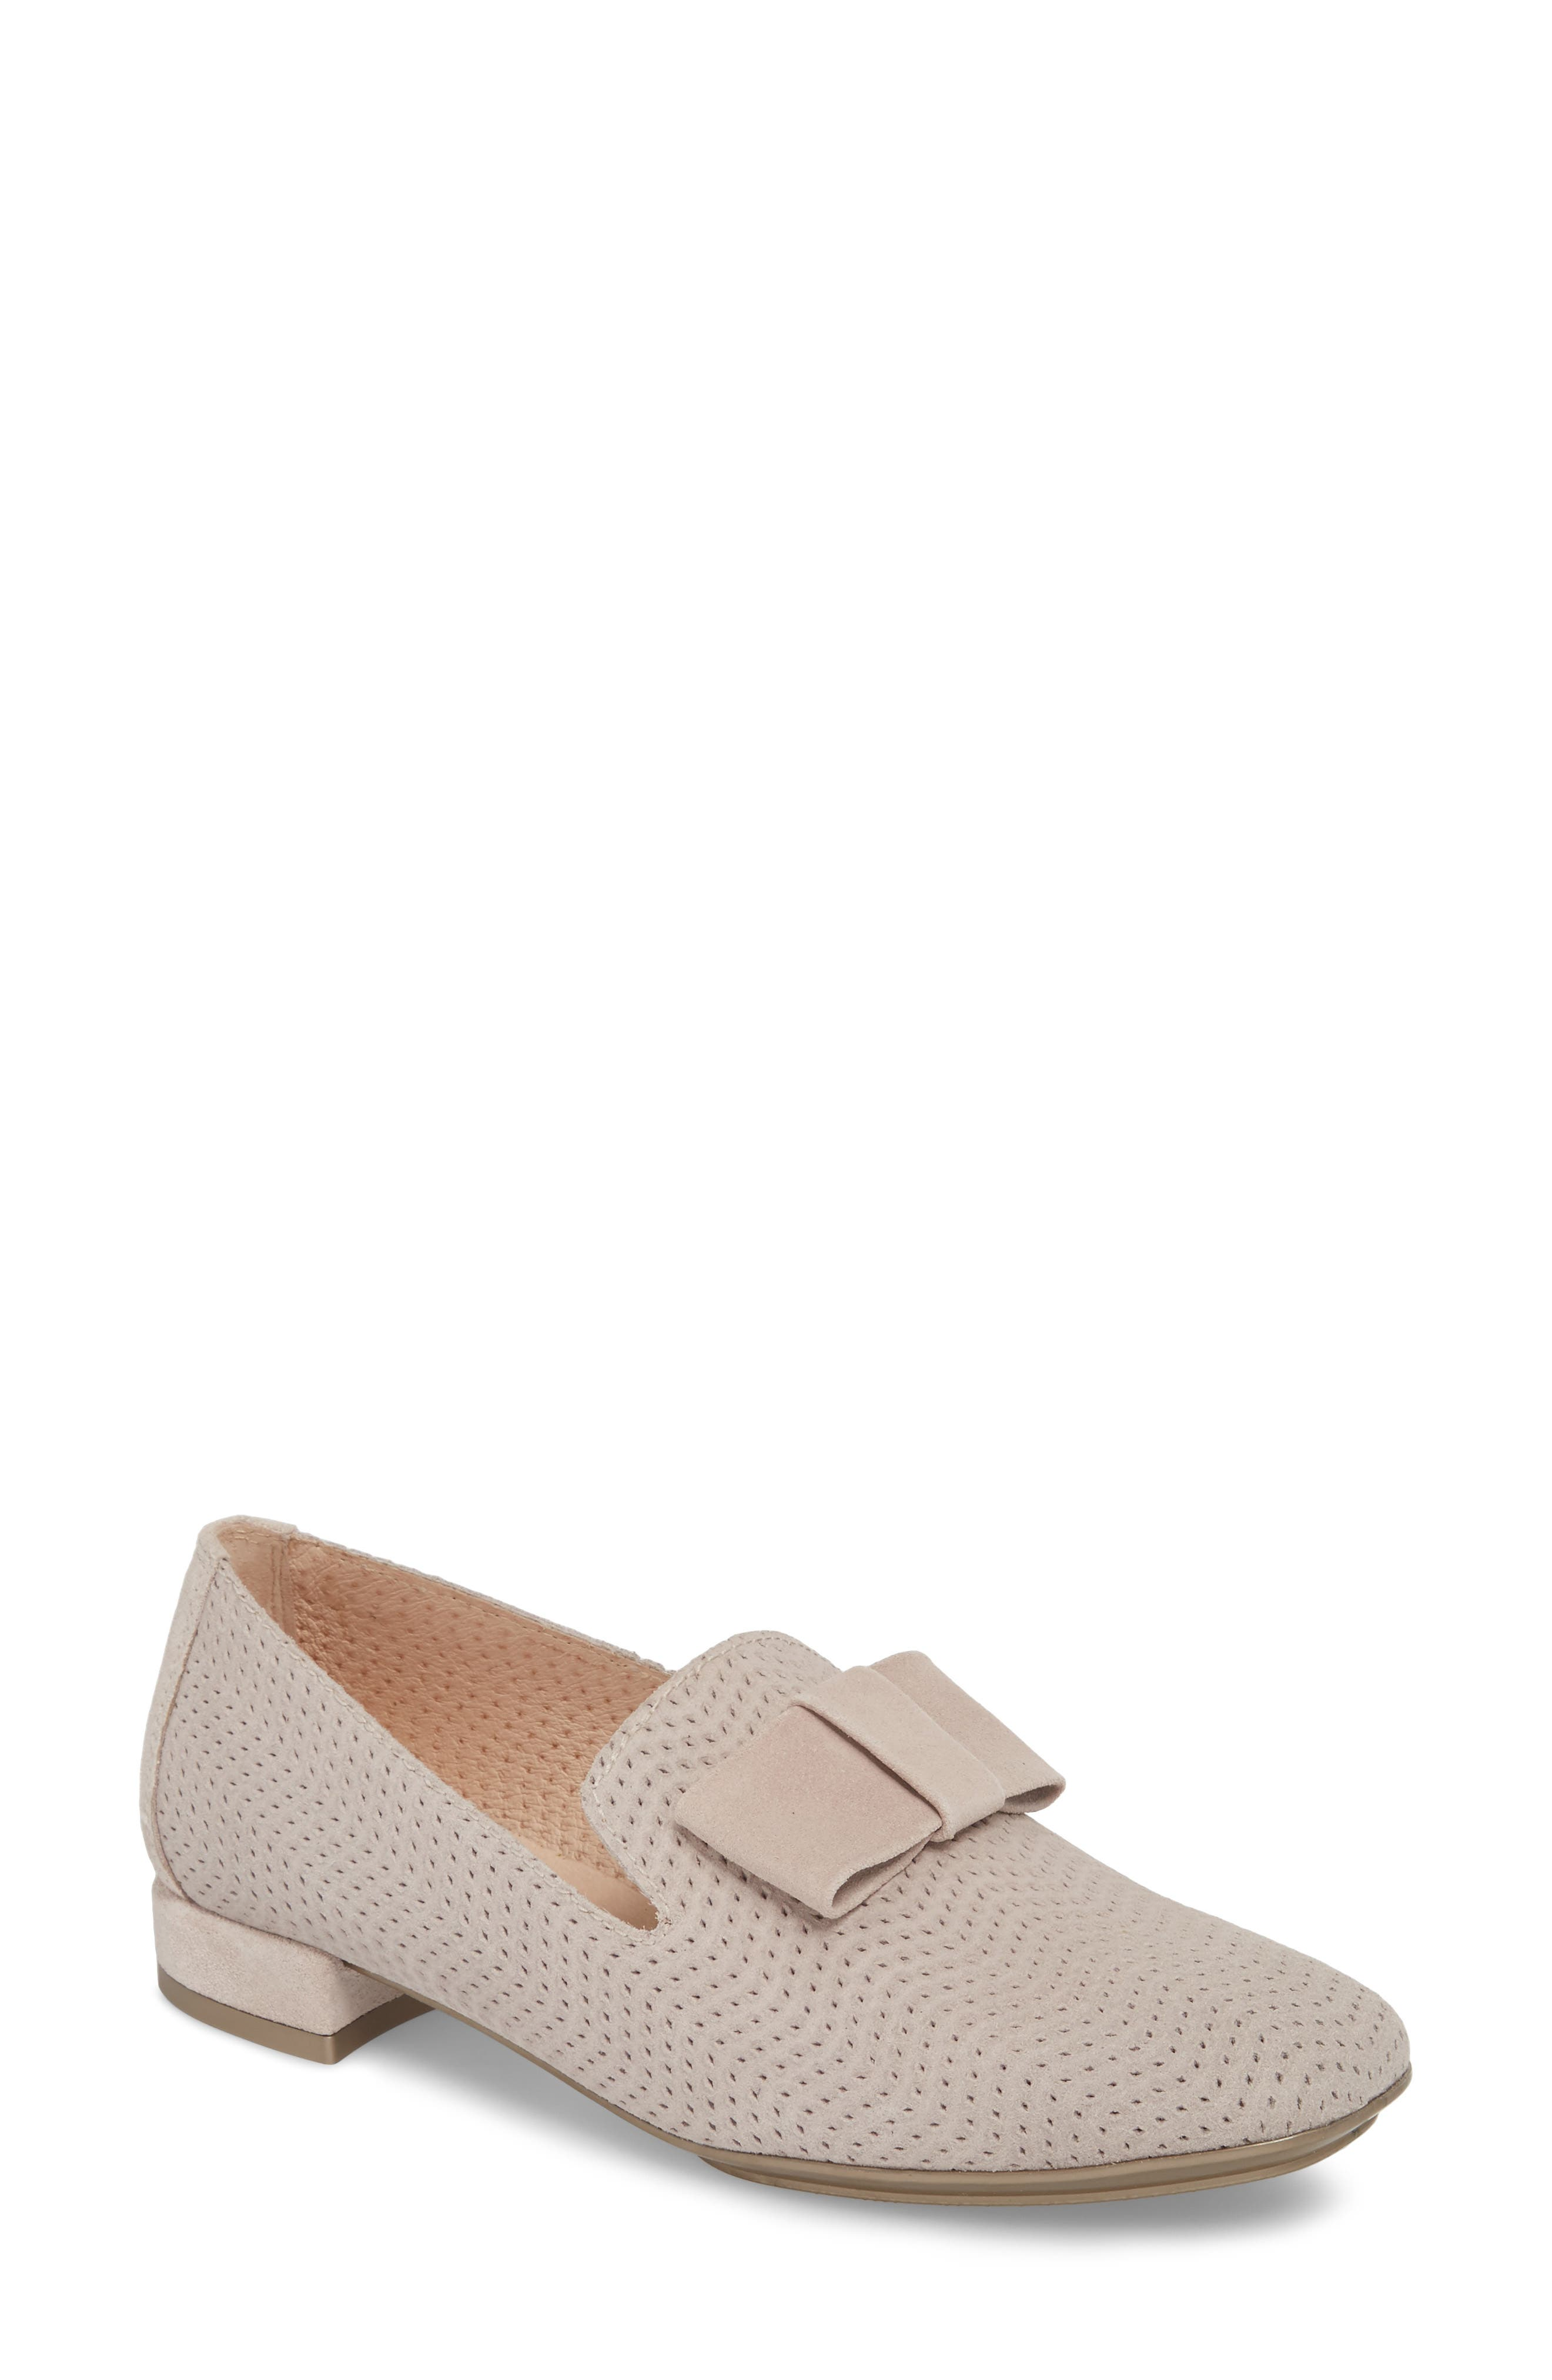 Isolynn Loafer,                             Main thumbnail 1, color,                             250